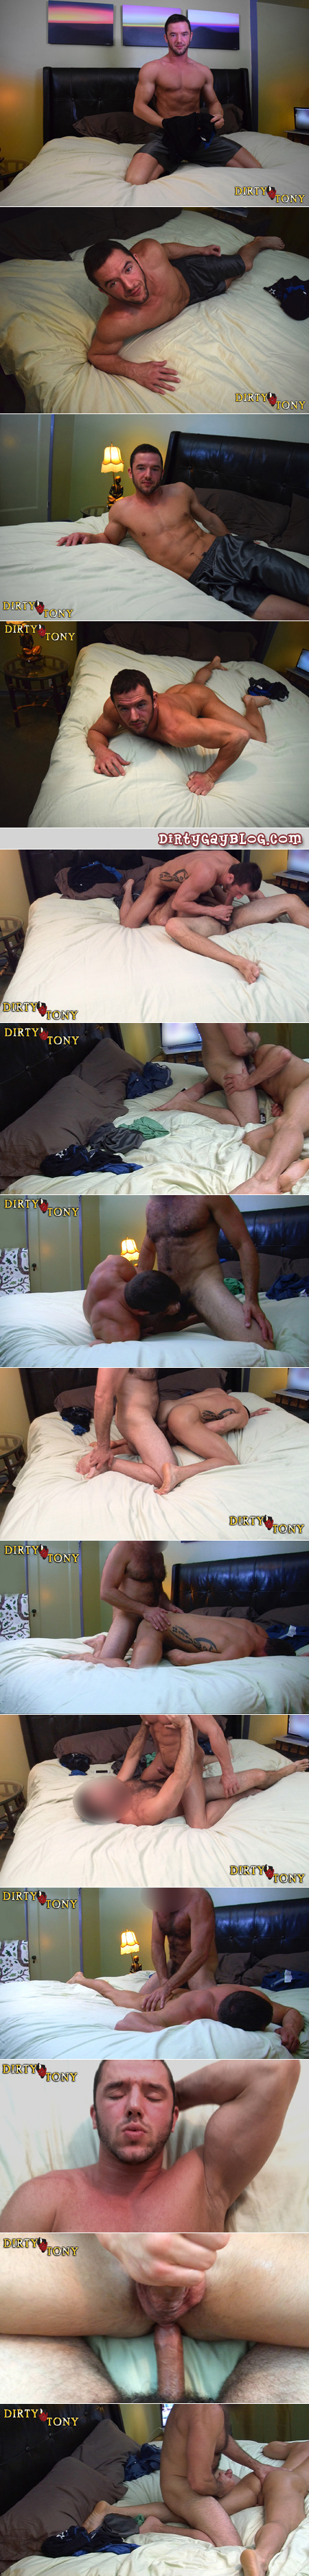 Hairy Daddy fucking a bisexual muscle hunk.